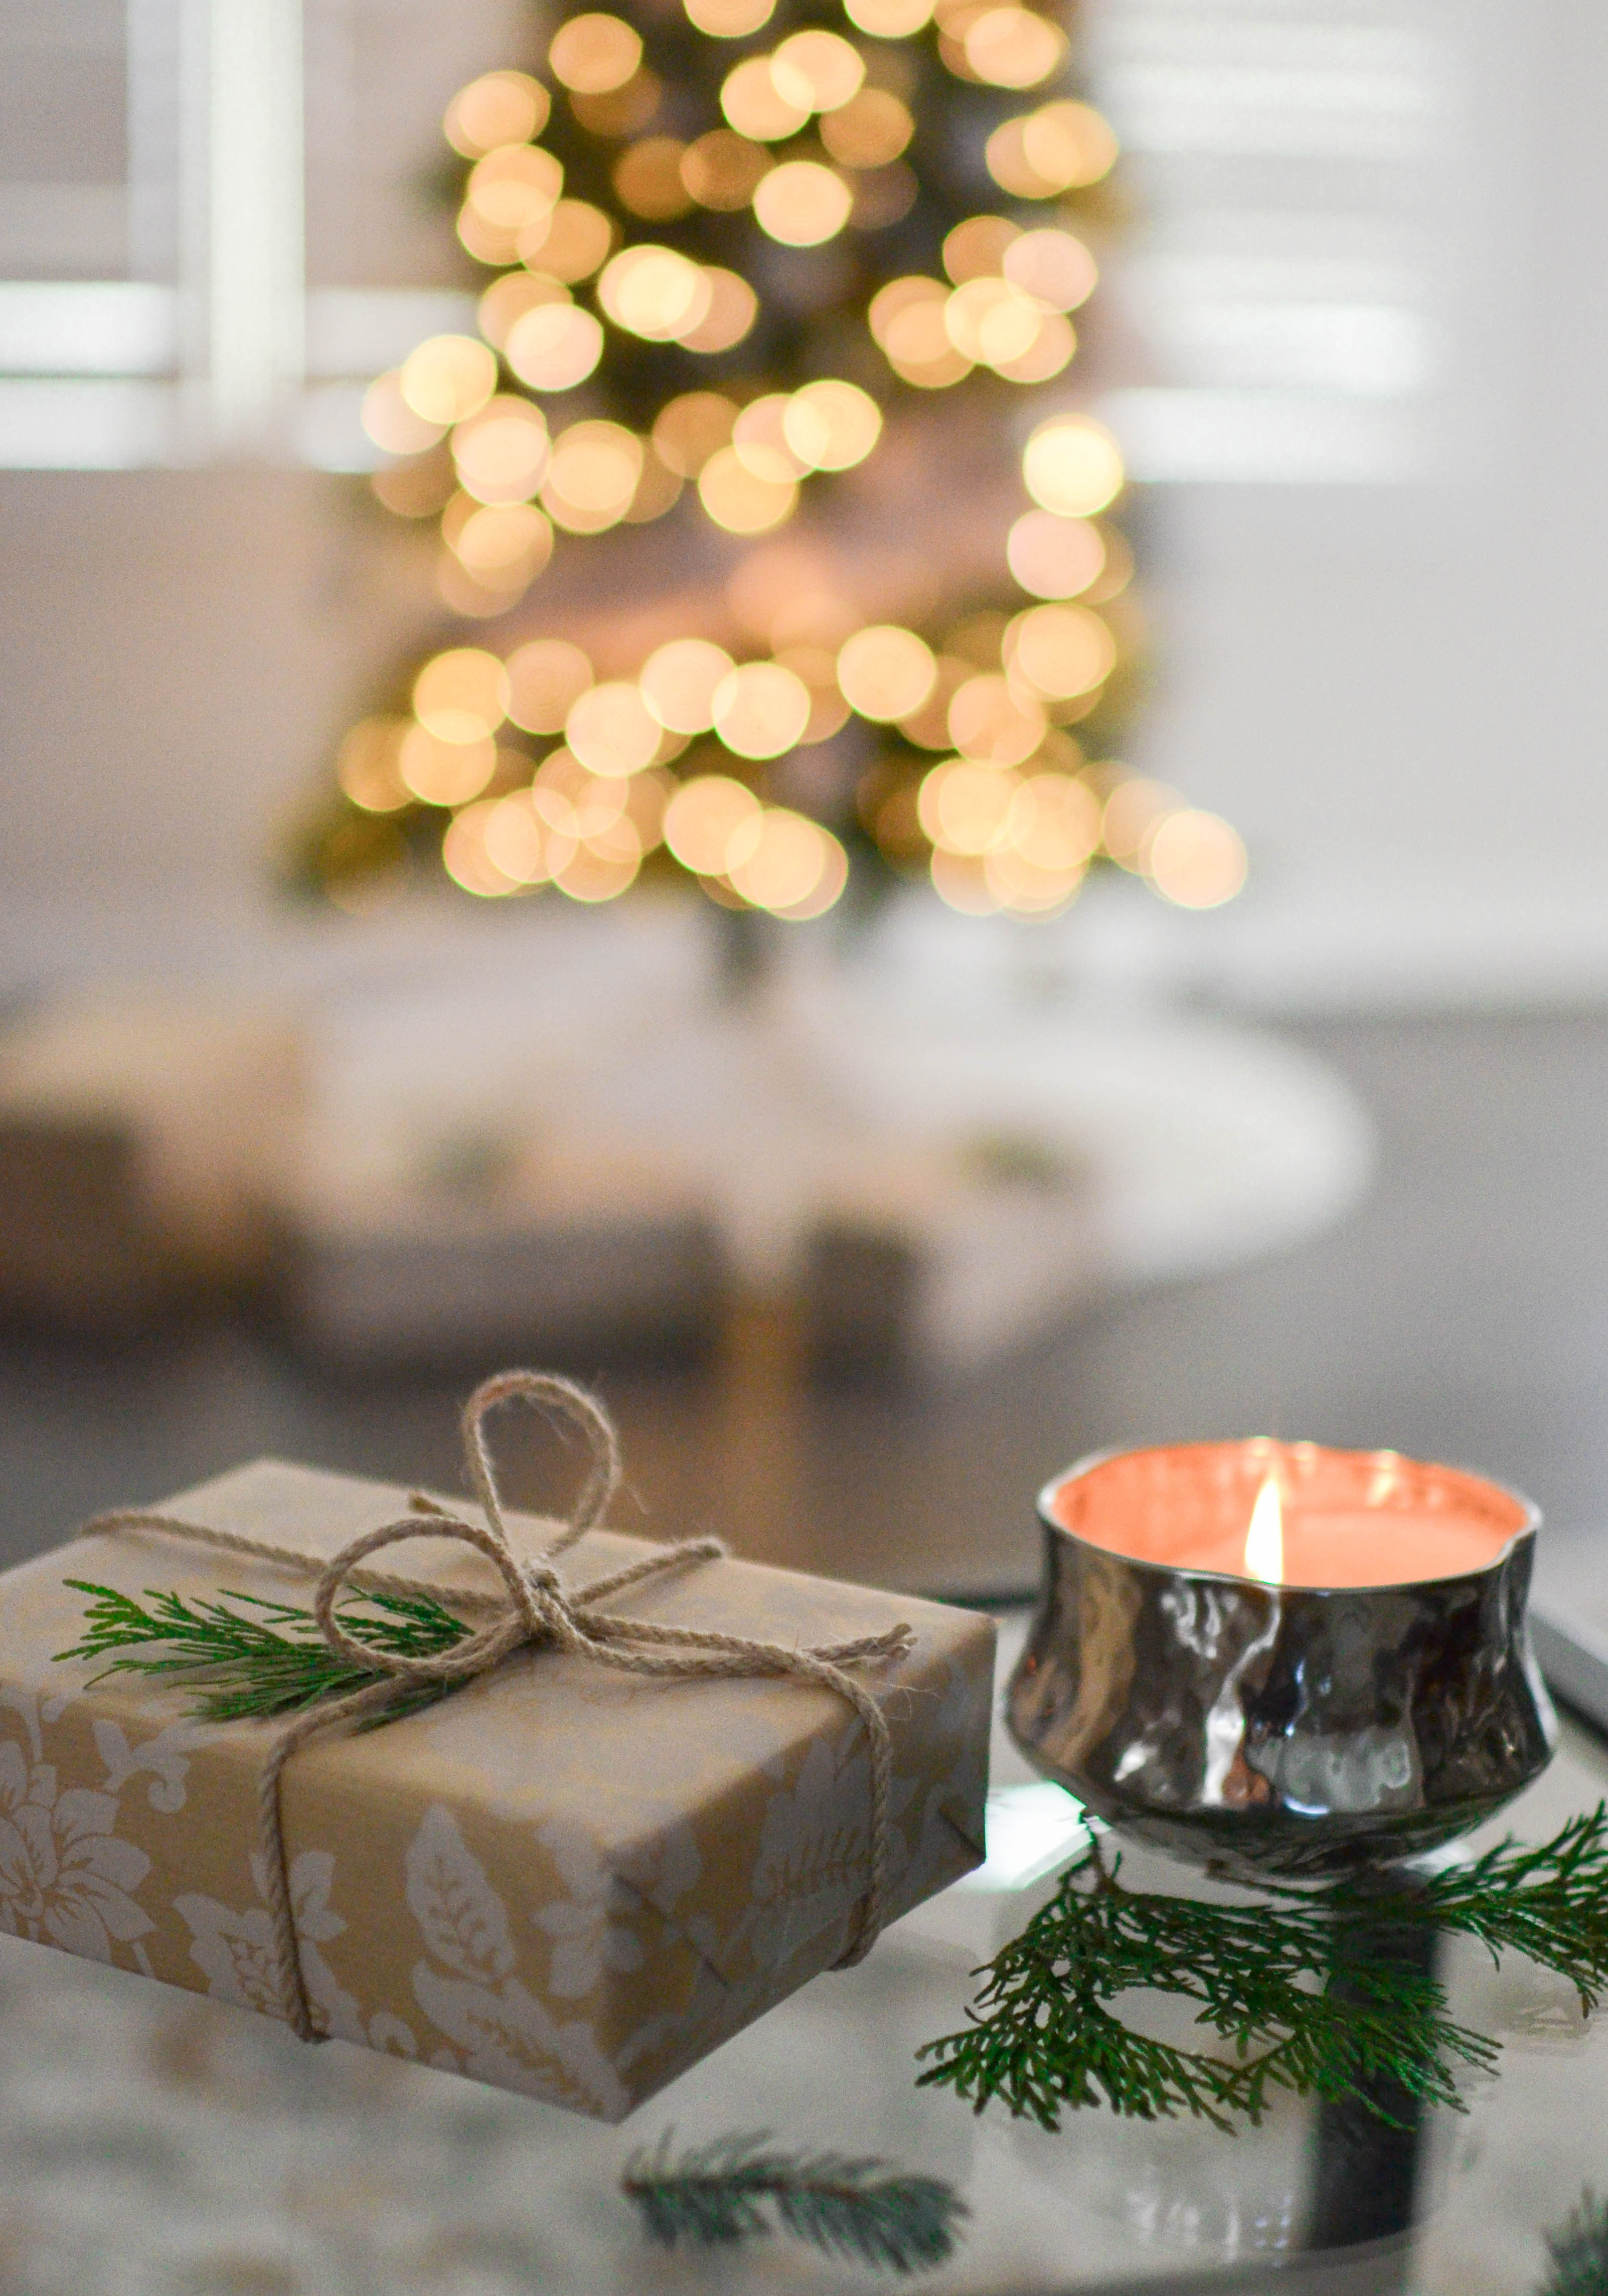 brown gift box beside stainless steel votive candle